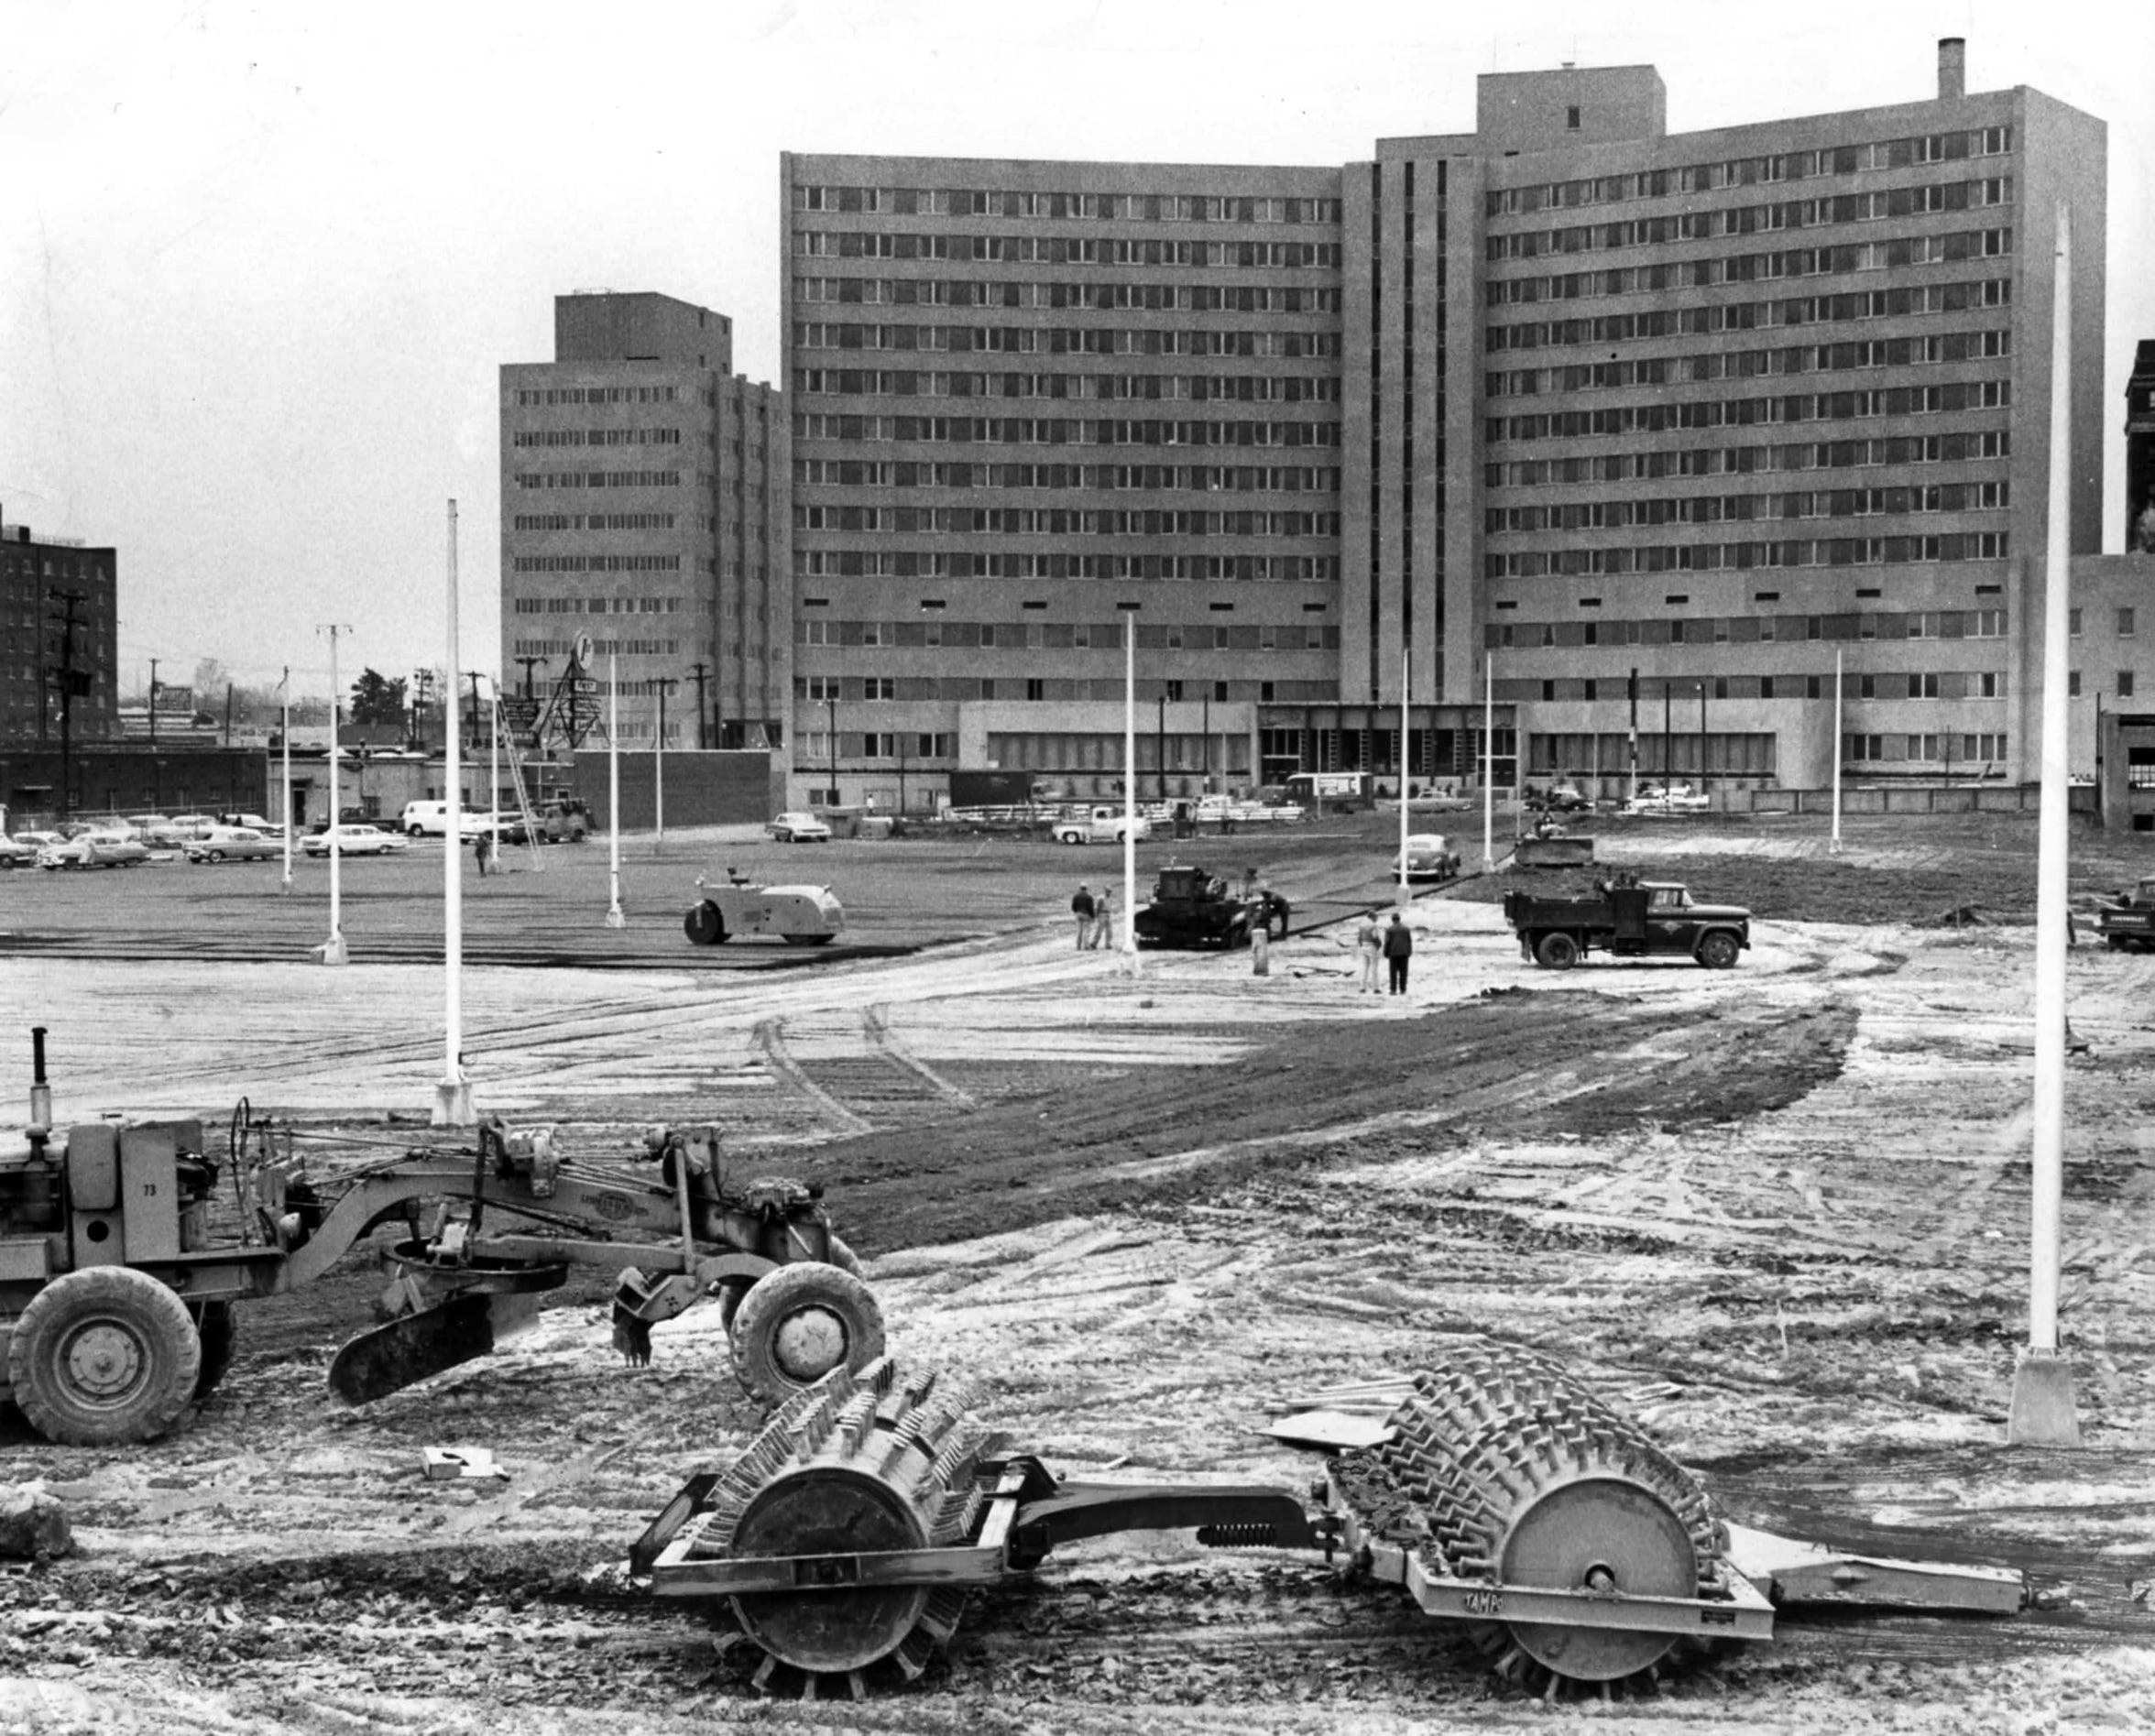 In February 1961, a parking lot was in the final stages of development at the former site of Russwood Park, which was destroyed by an Easter Sunday fire on April 17, 1960. Baptist Hospital stands on Madison Avenue in the background.